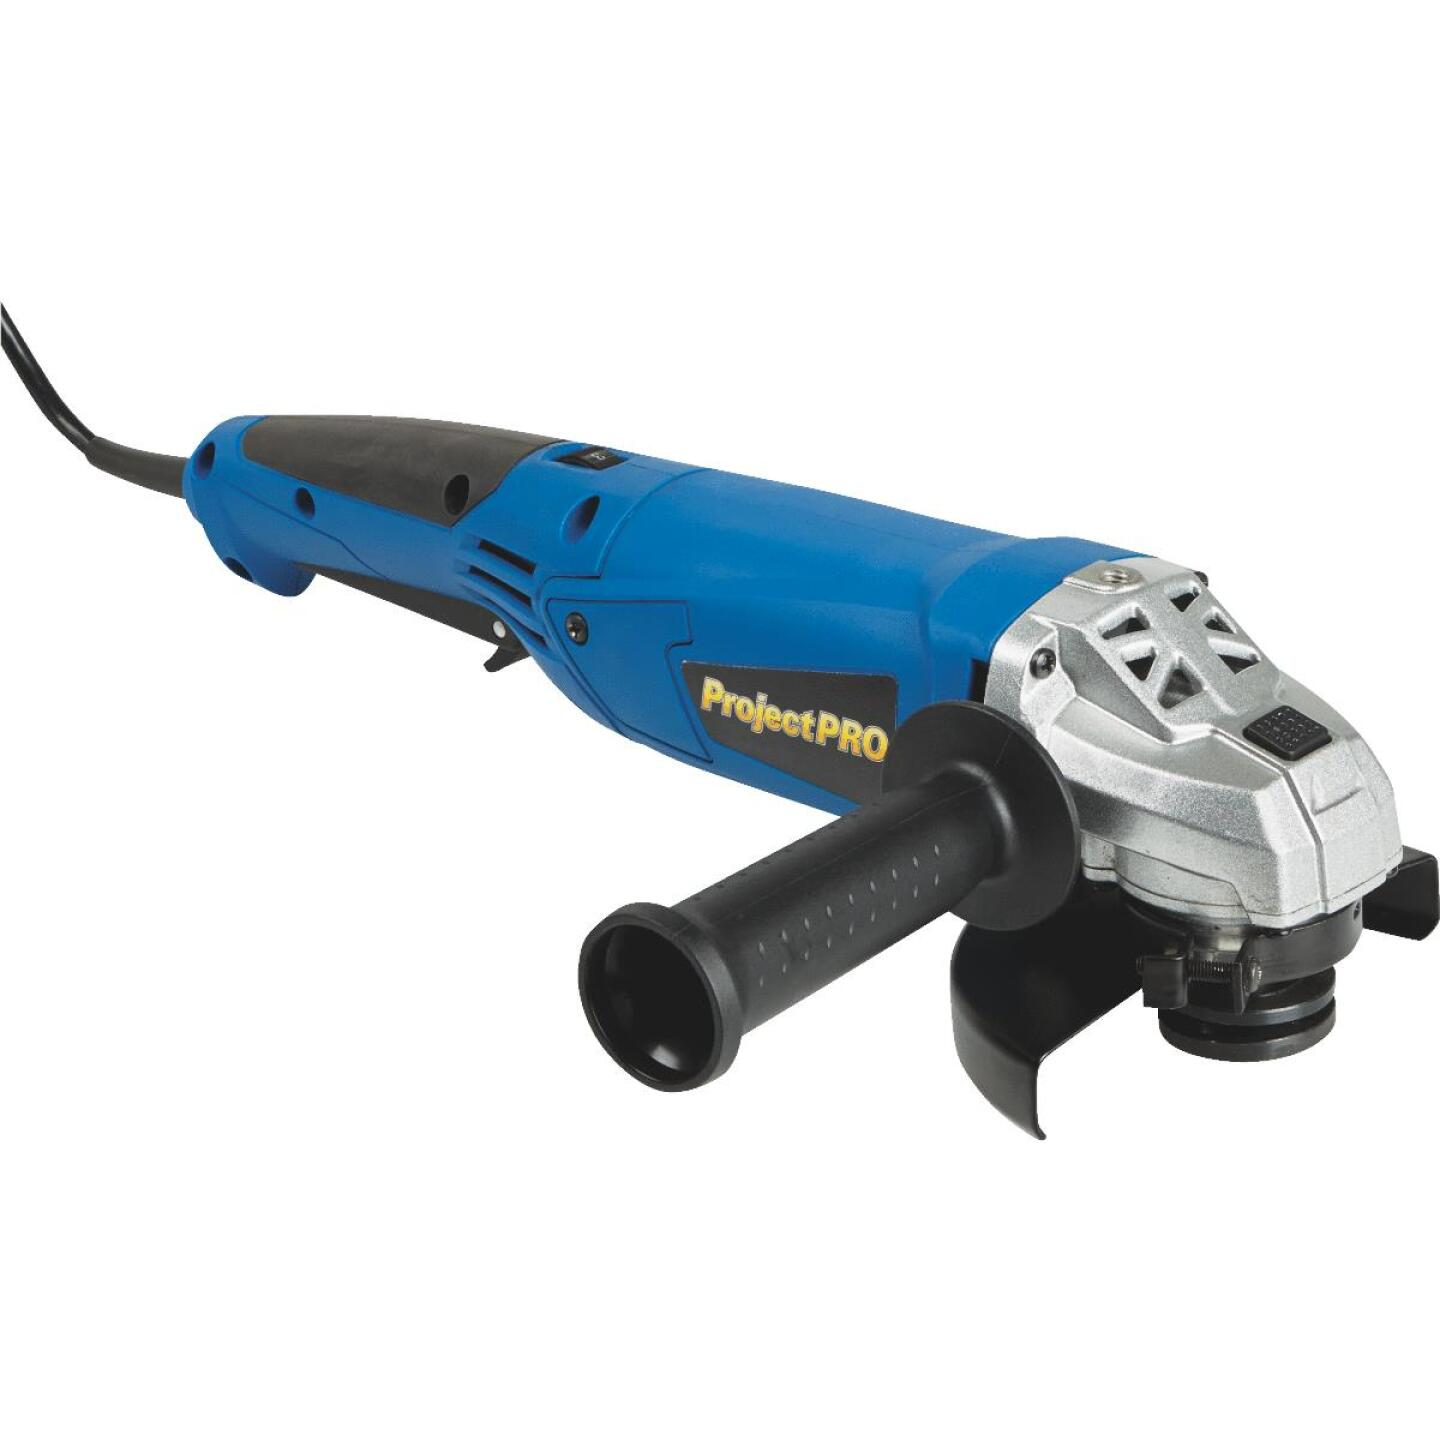 Project Pro 4-1/2 In. 10-Amp Angle Grinder Image 1